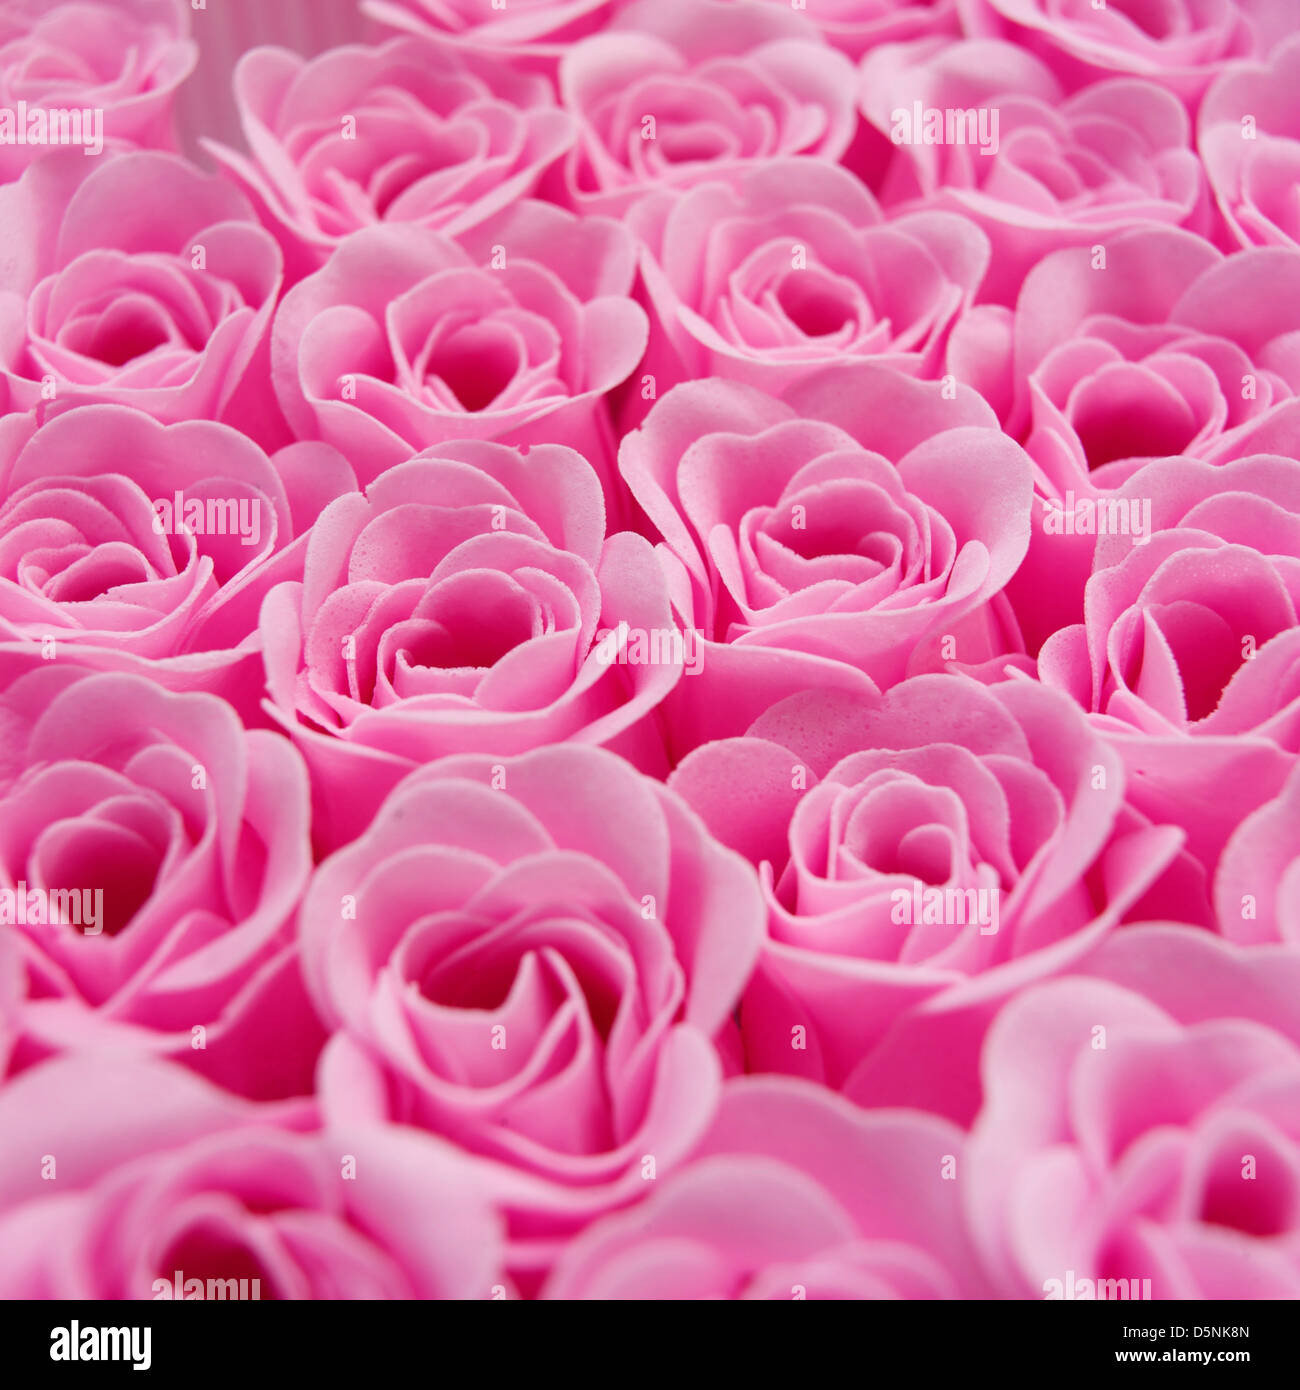 Artificial pink roses - Stock Image